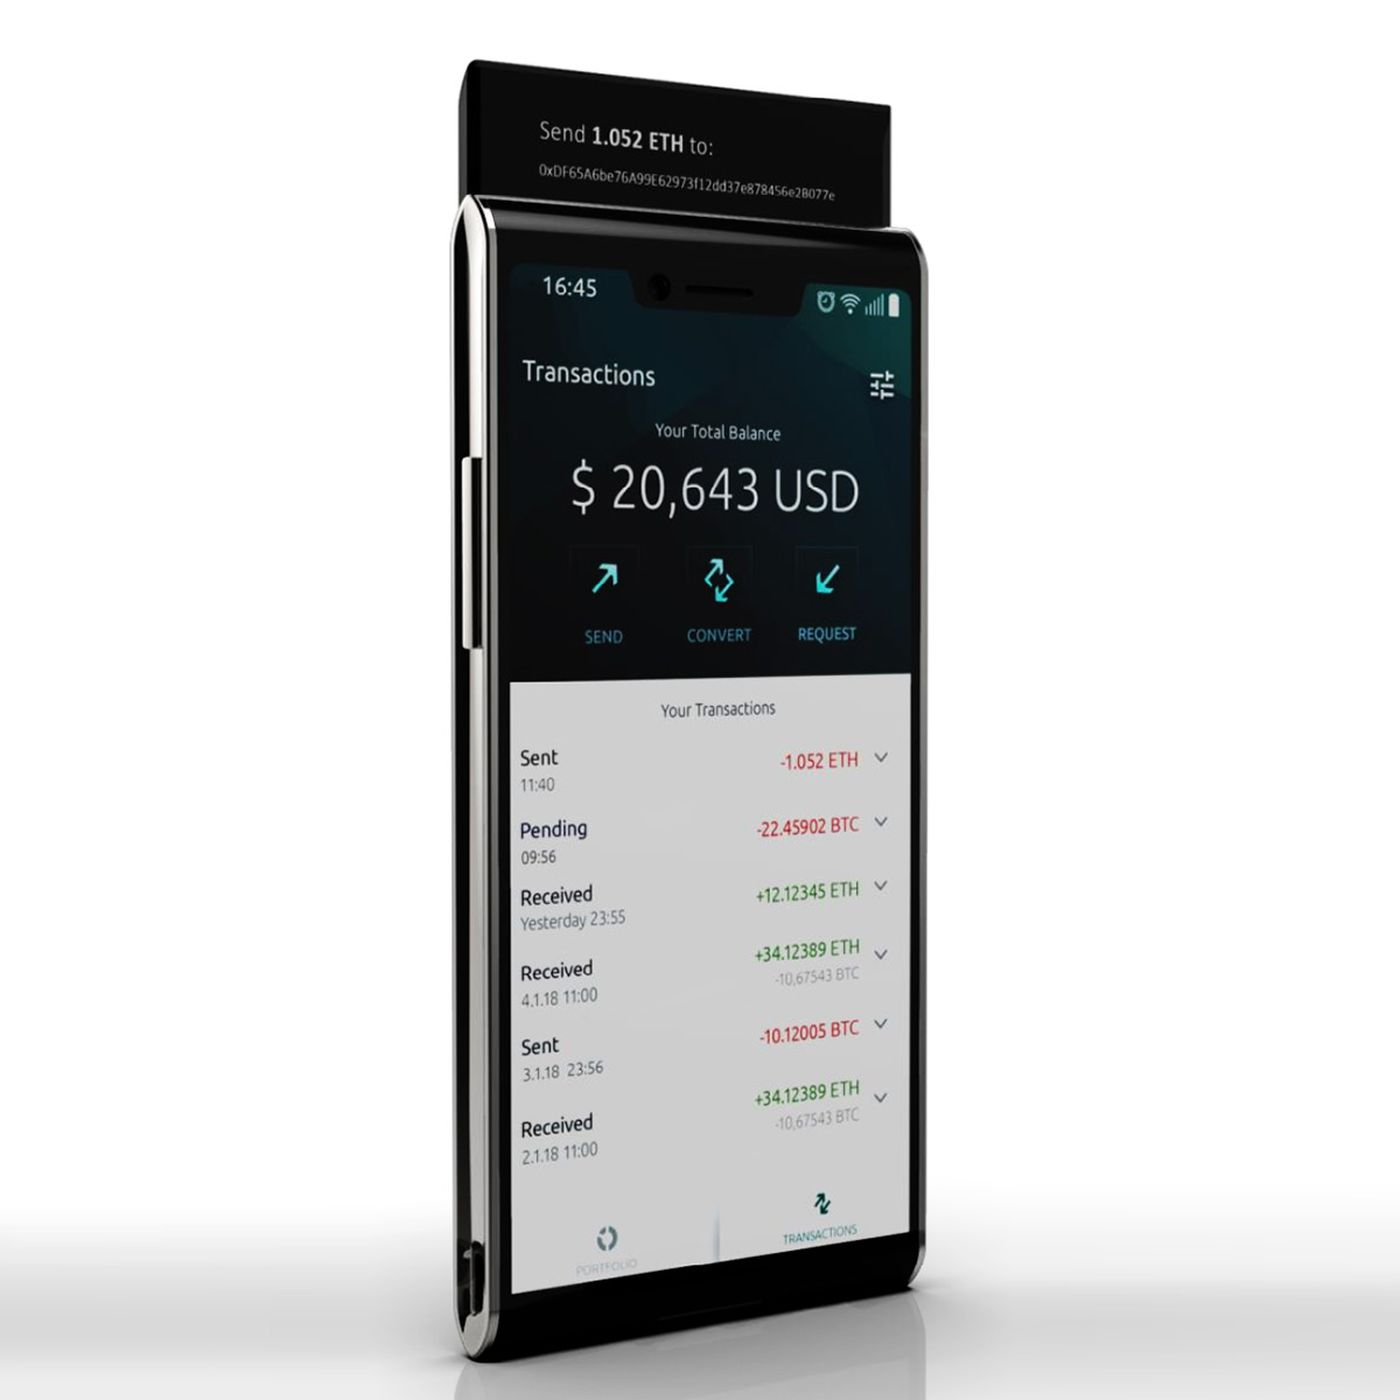 Bitcoin, Main Stablecoin Wallets Added to Samsung Galaxy S10 1